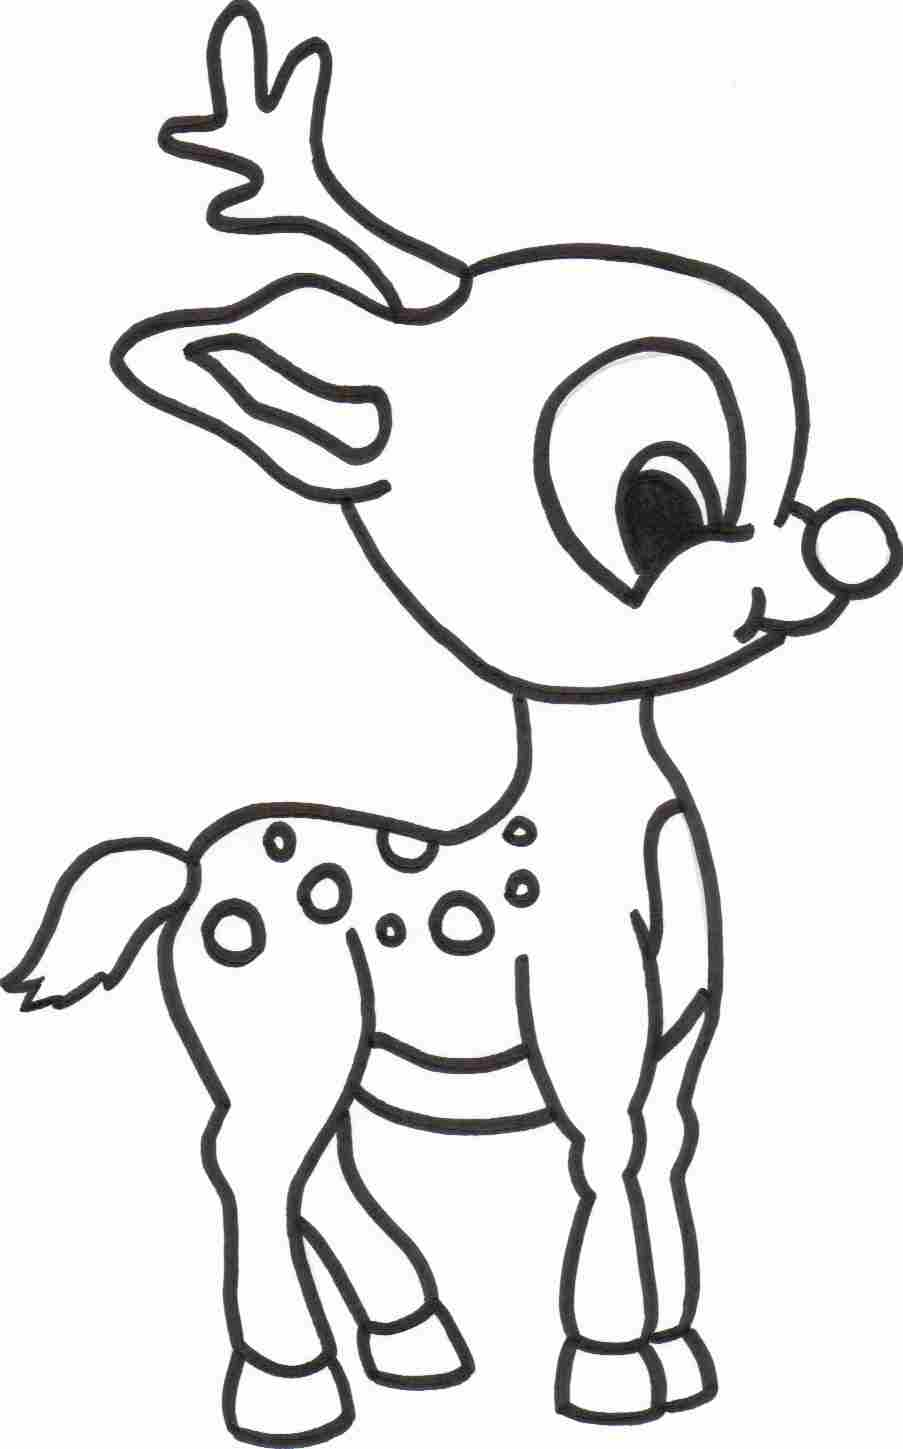 Drawn reindeer colouring page Pages Free Page Reindeer For